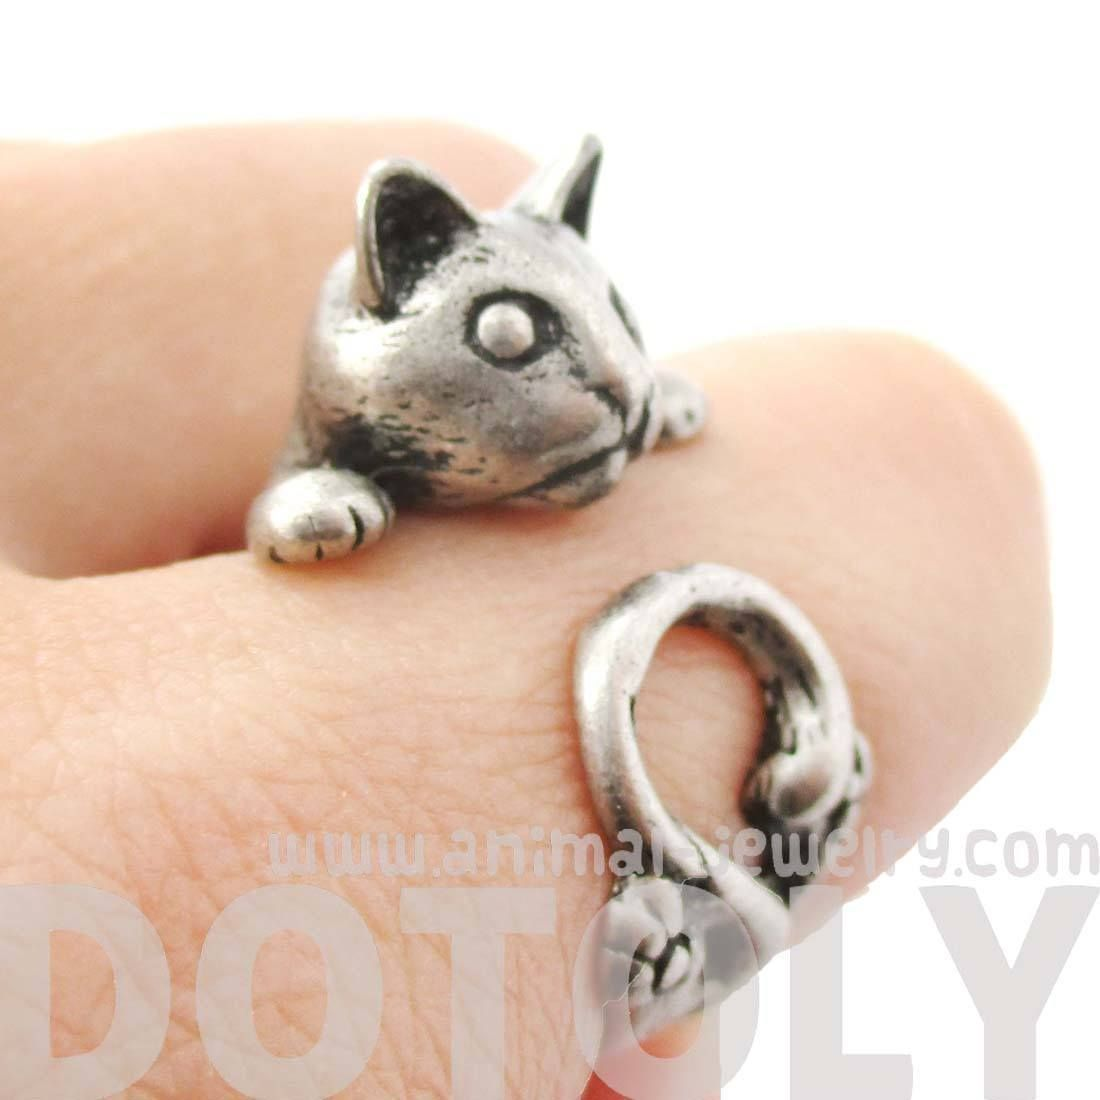 Details Sizing Shipping An animal themed ring made